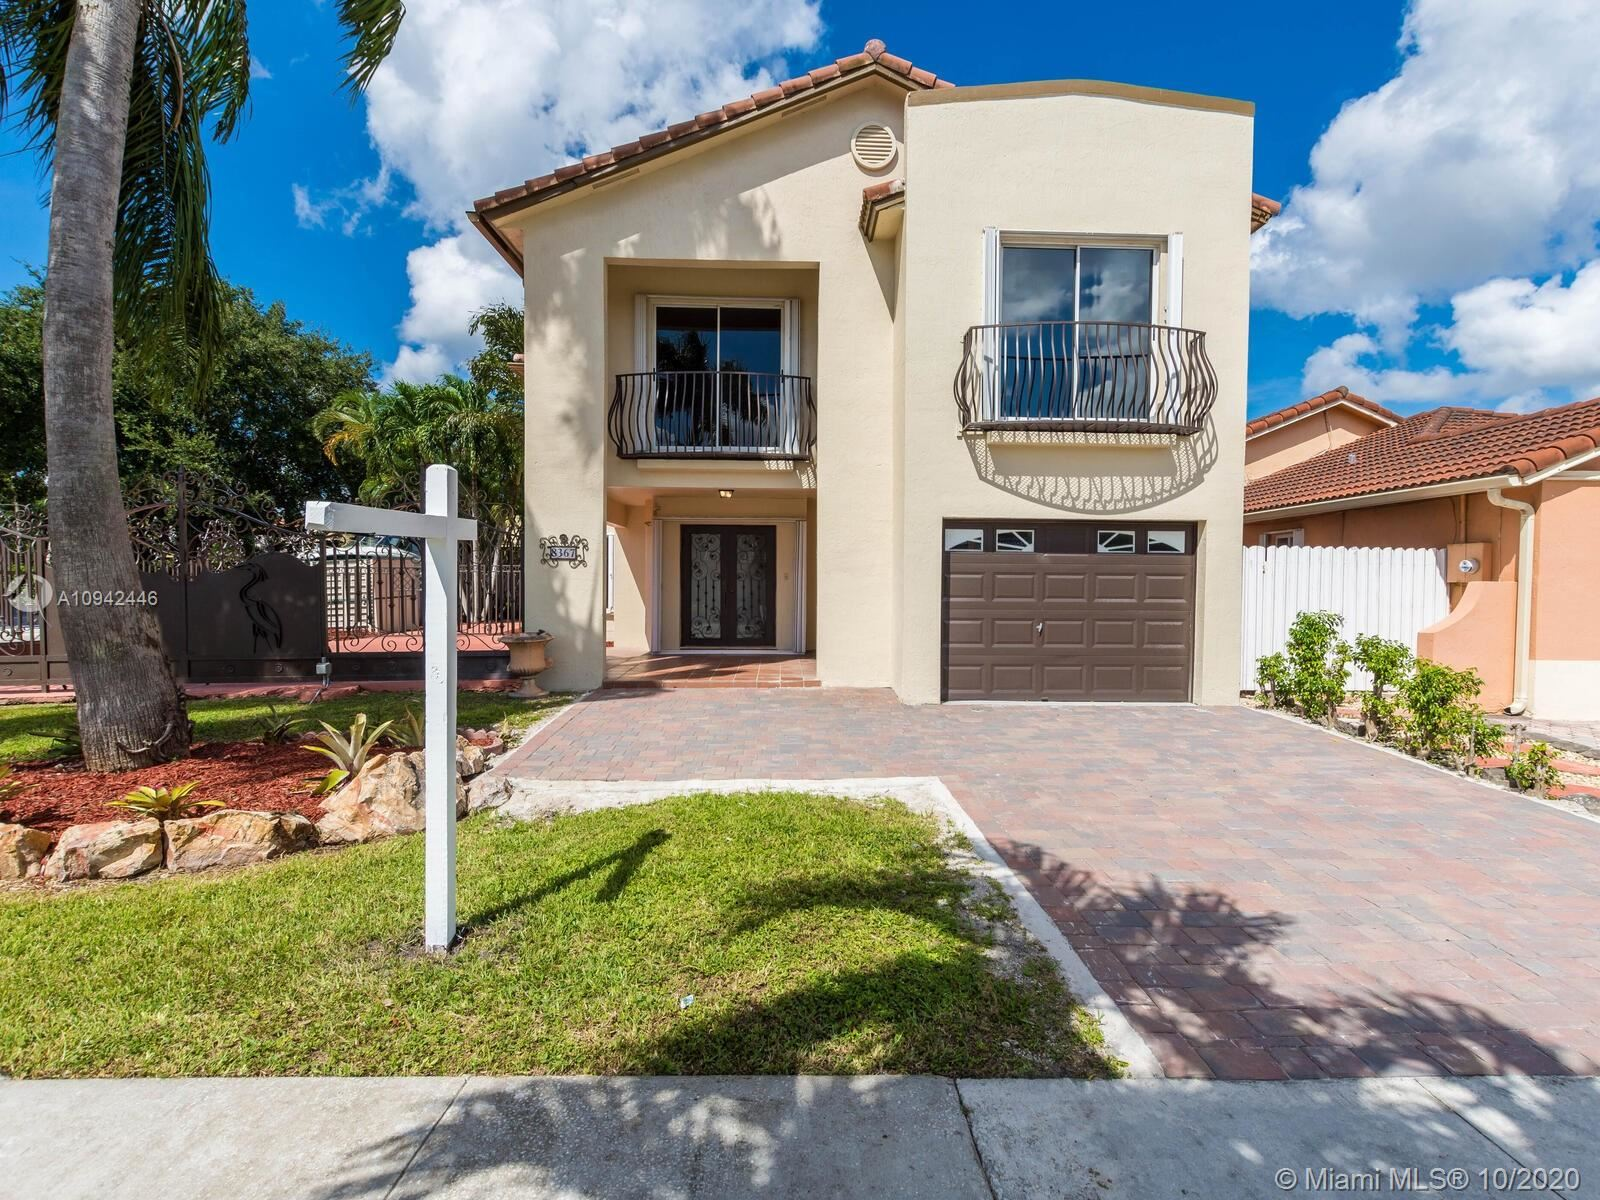 8367 NW 194th Ter, Hialeah, FL 33015 - #: A10942446